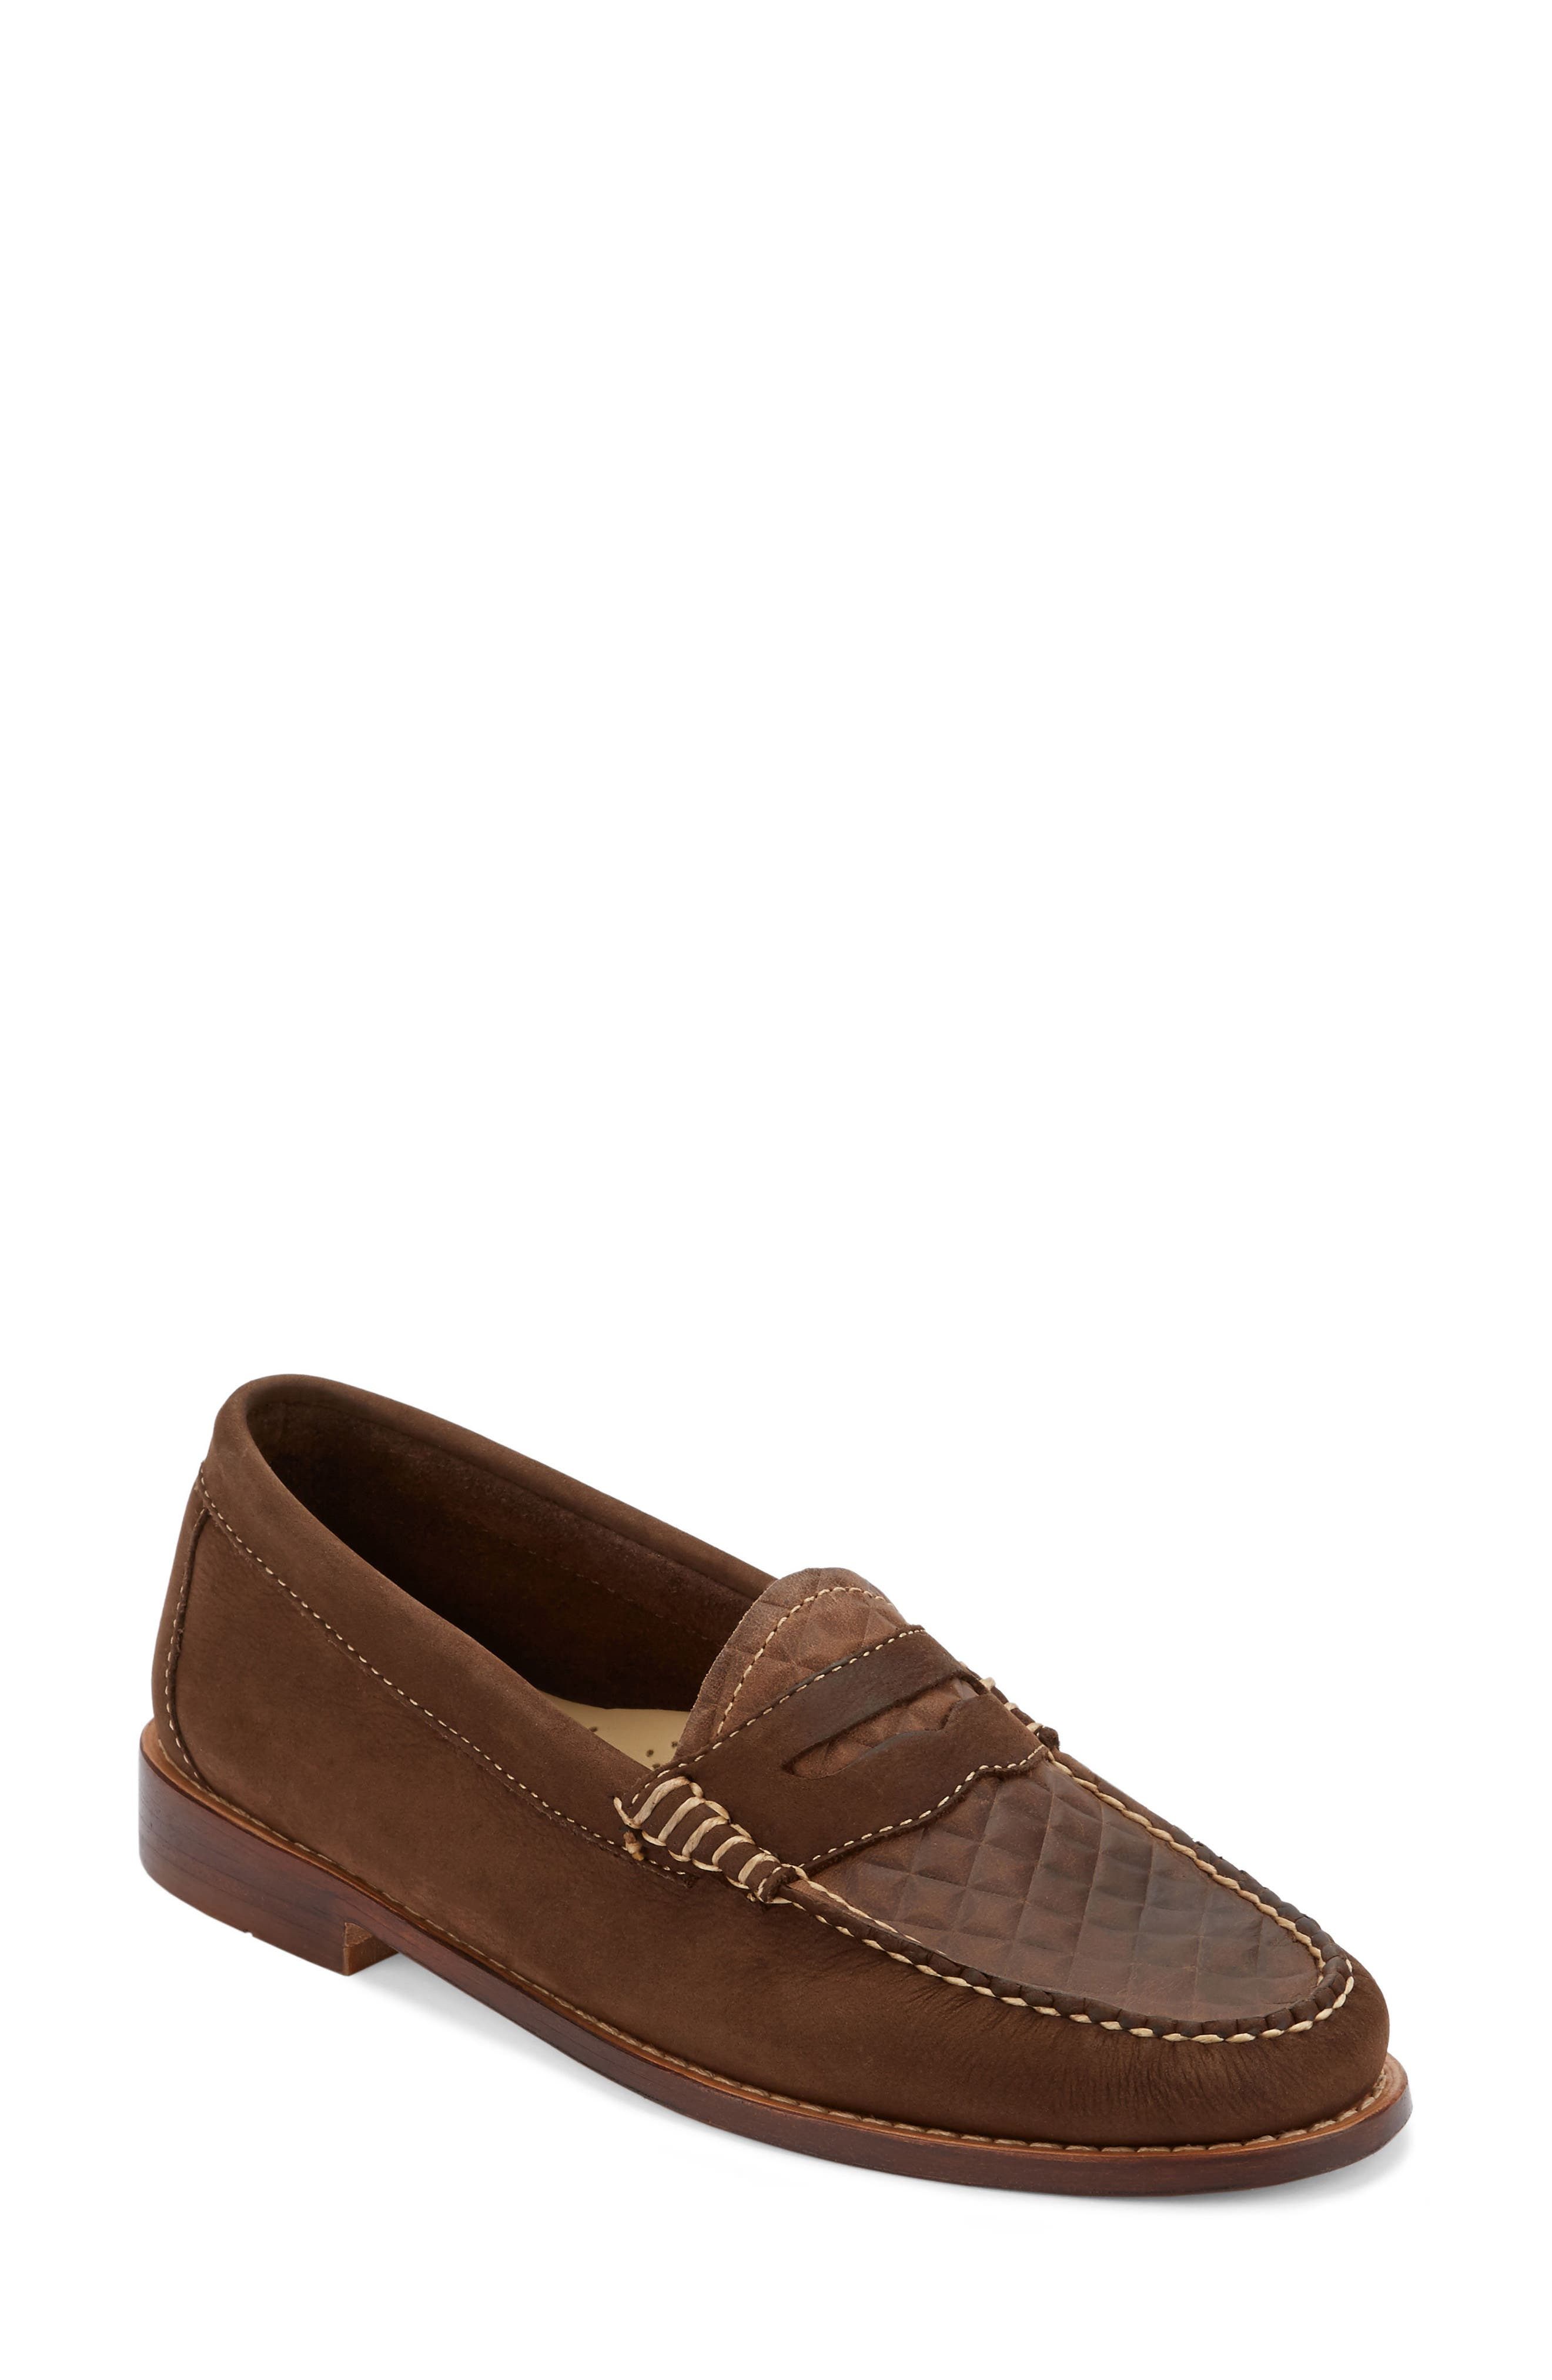 'Whitney' Loafer,                             Main thumbnail 4, color,